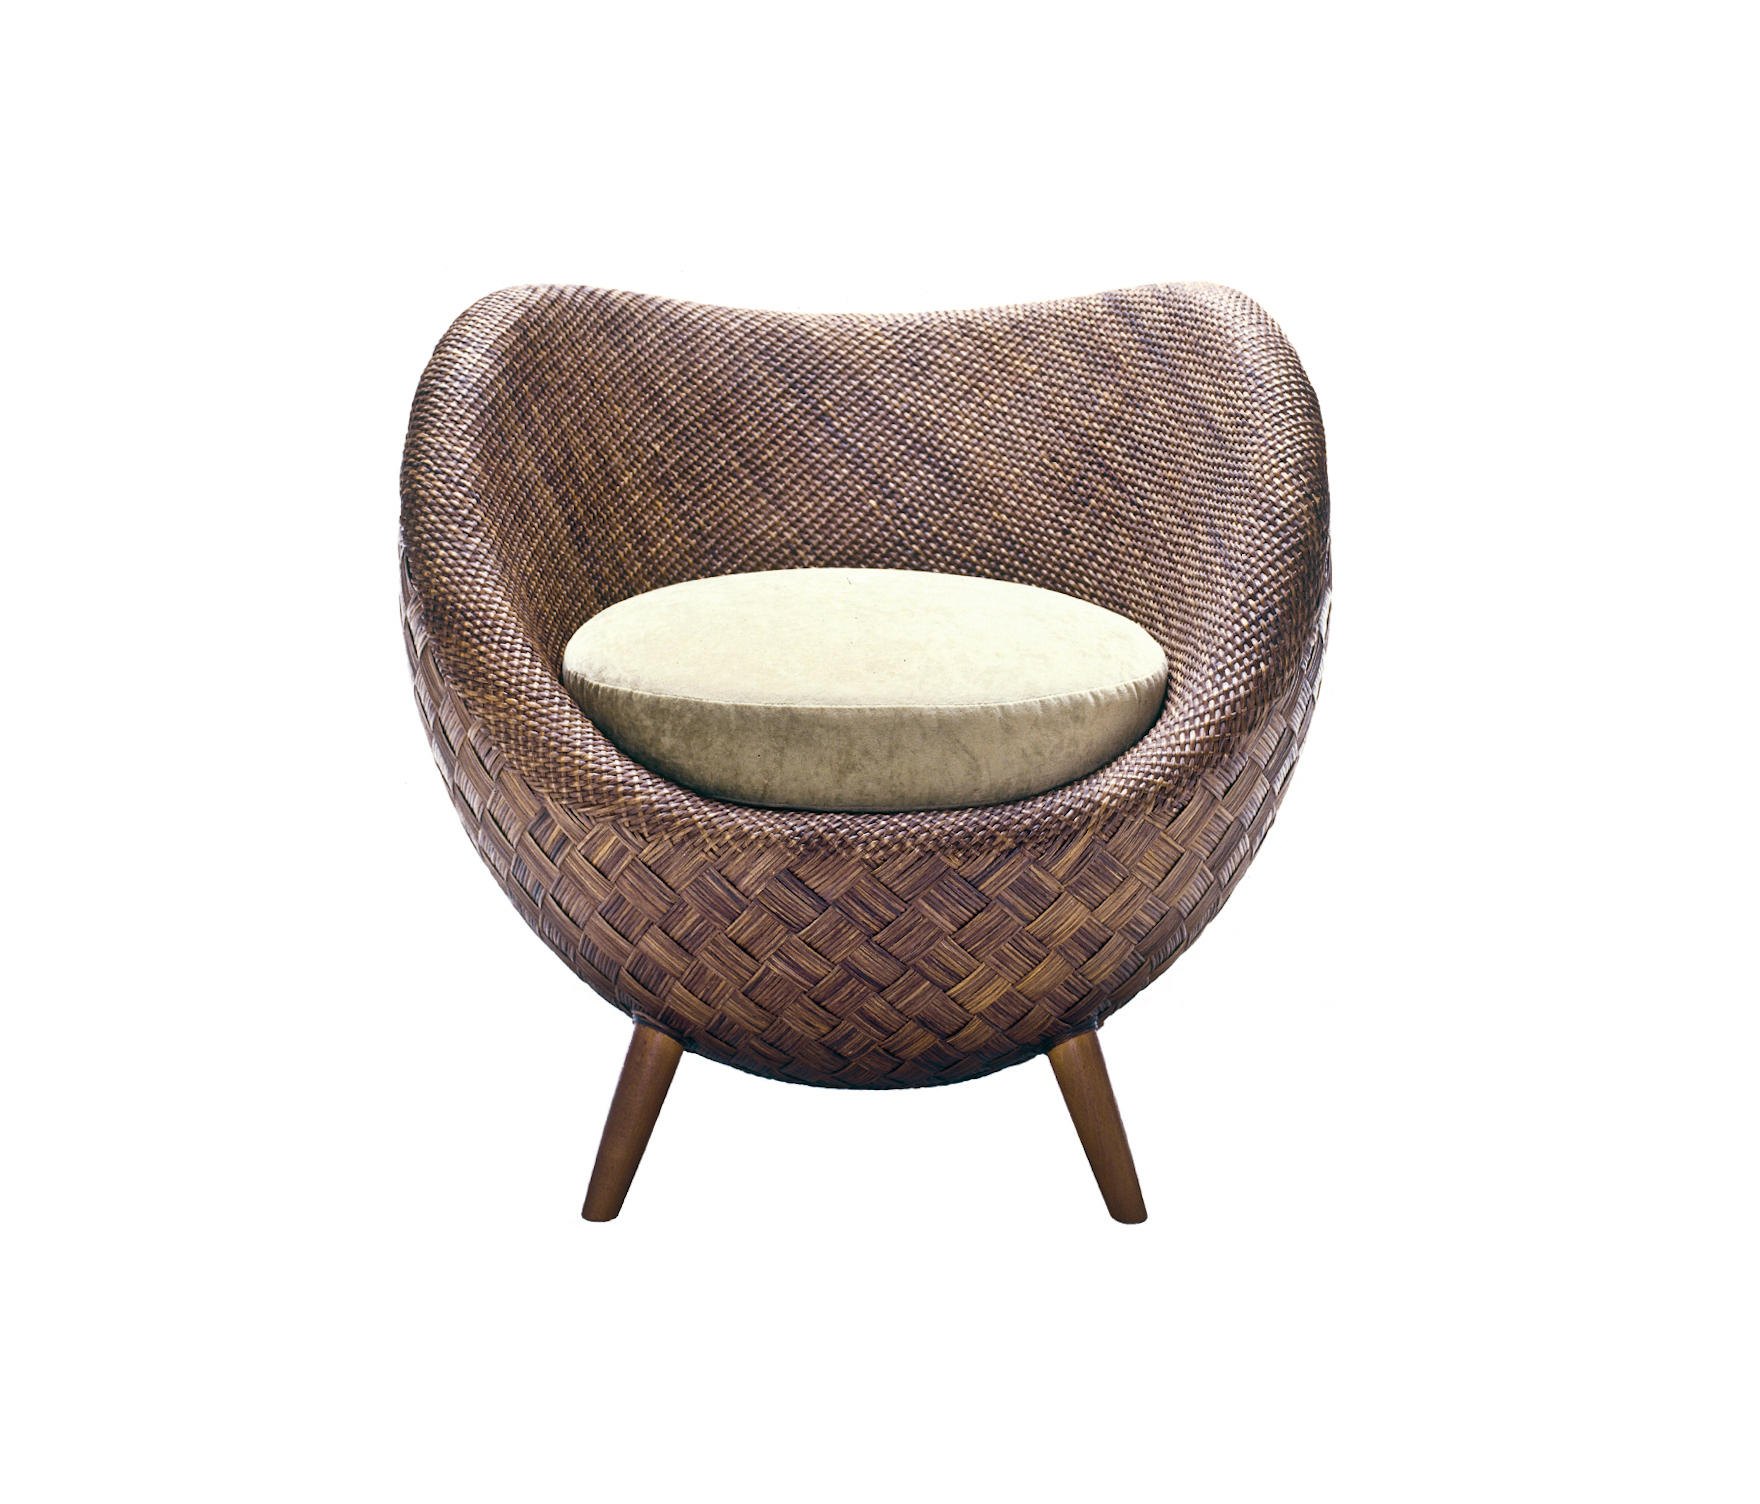 kenneth cobonpue furniture. la luna easy armchair by kenneth cobonpue lounge chairs furniture d